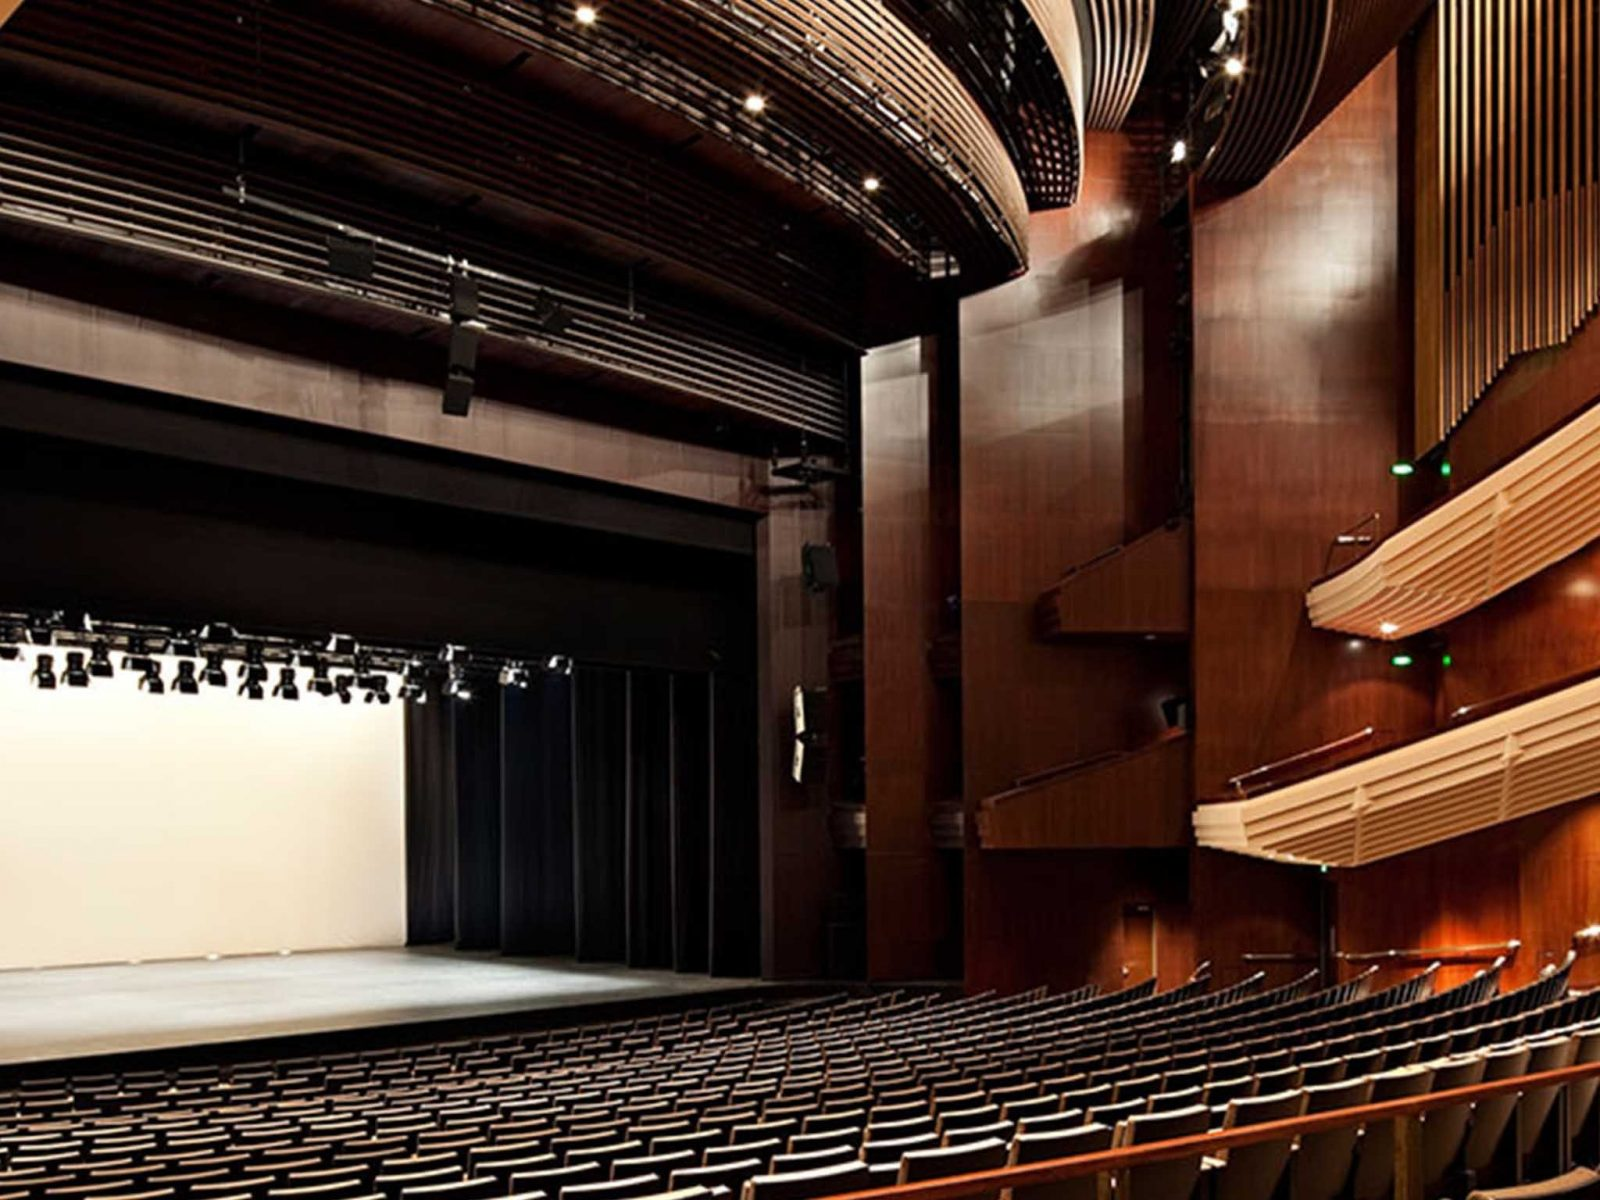 QPAC Weekly Discovery Tour